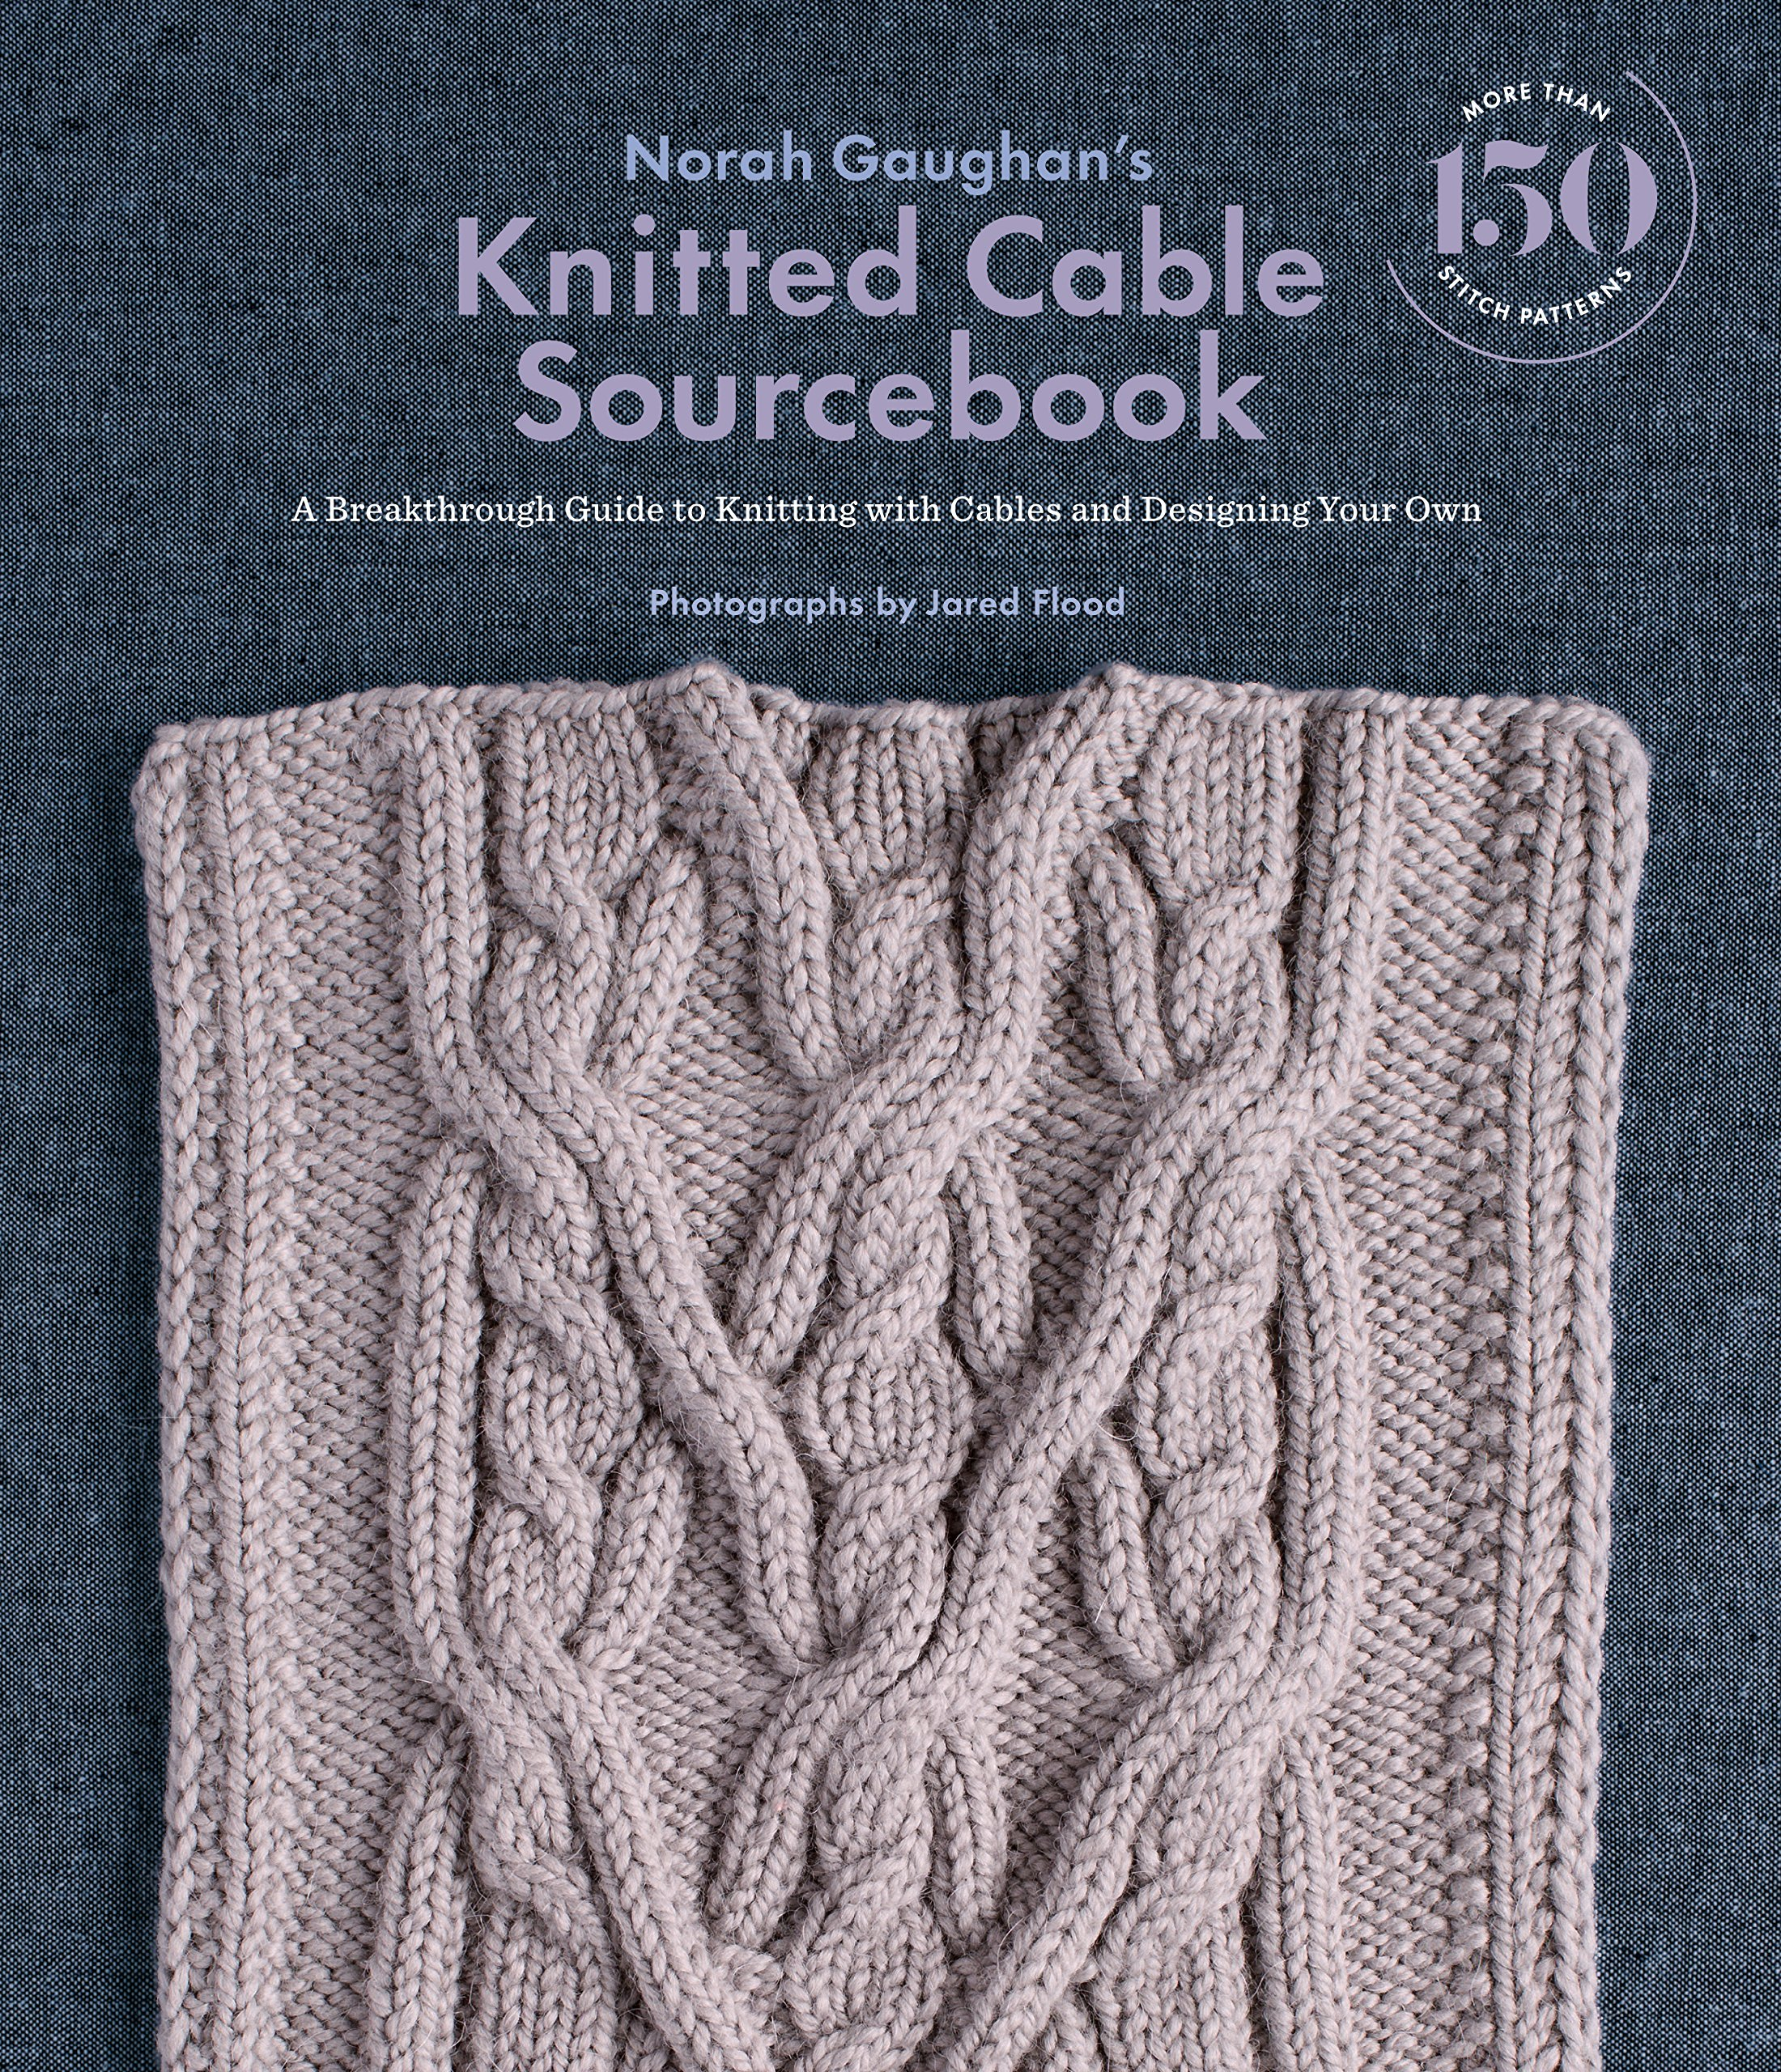 Norah Gaughan's Knitted Cable Sourcebook  A Breakthrough Guide To Knitting With Cables And Designing Your Own  English Edition